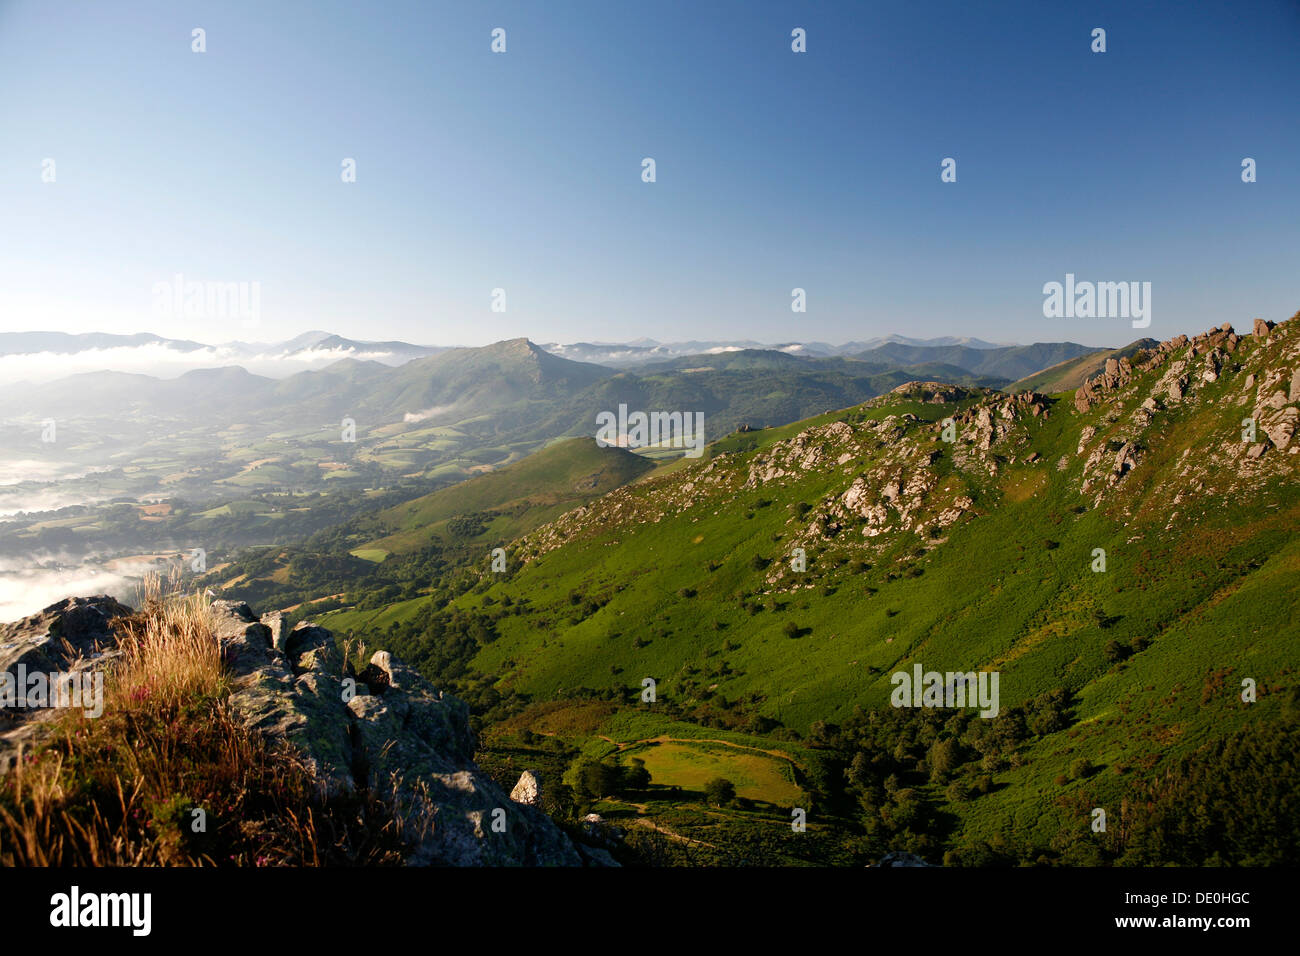 Landscape at La Rhune Mountain, Basque Country, Pyrenees, Aquitaine region, department of Pyrénées-Atlantiques, France, Europe - Stock Image